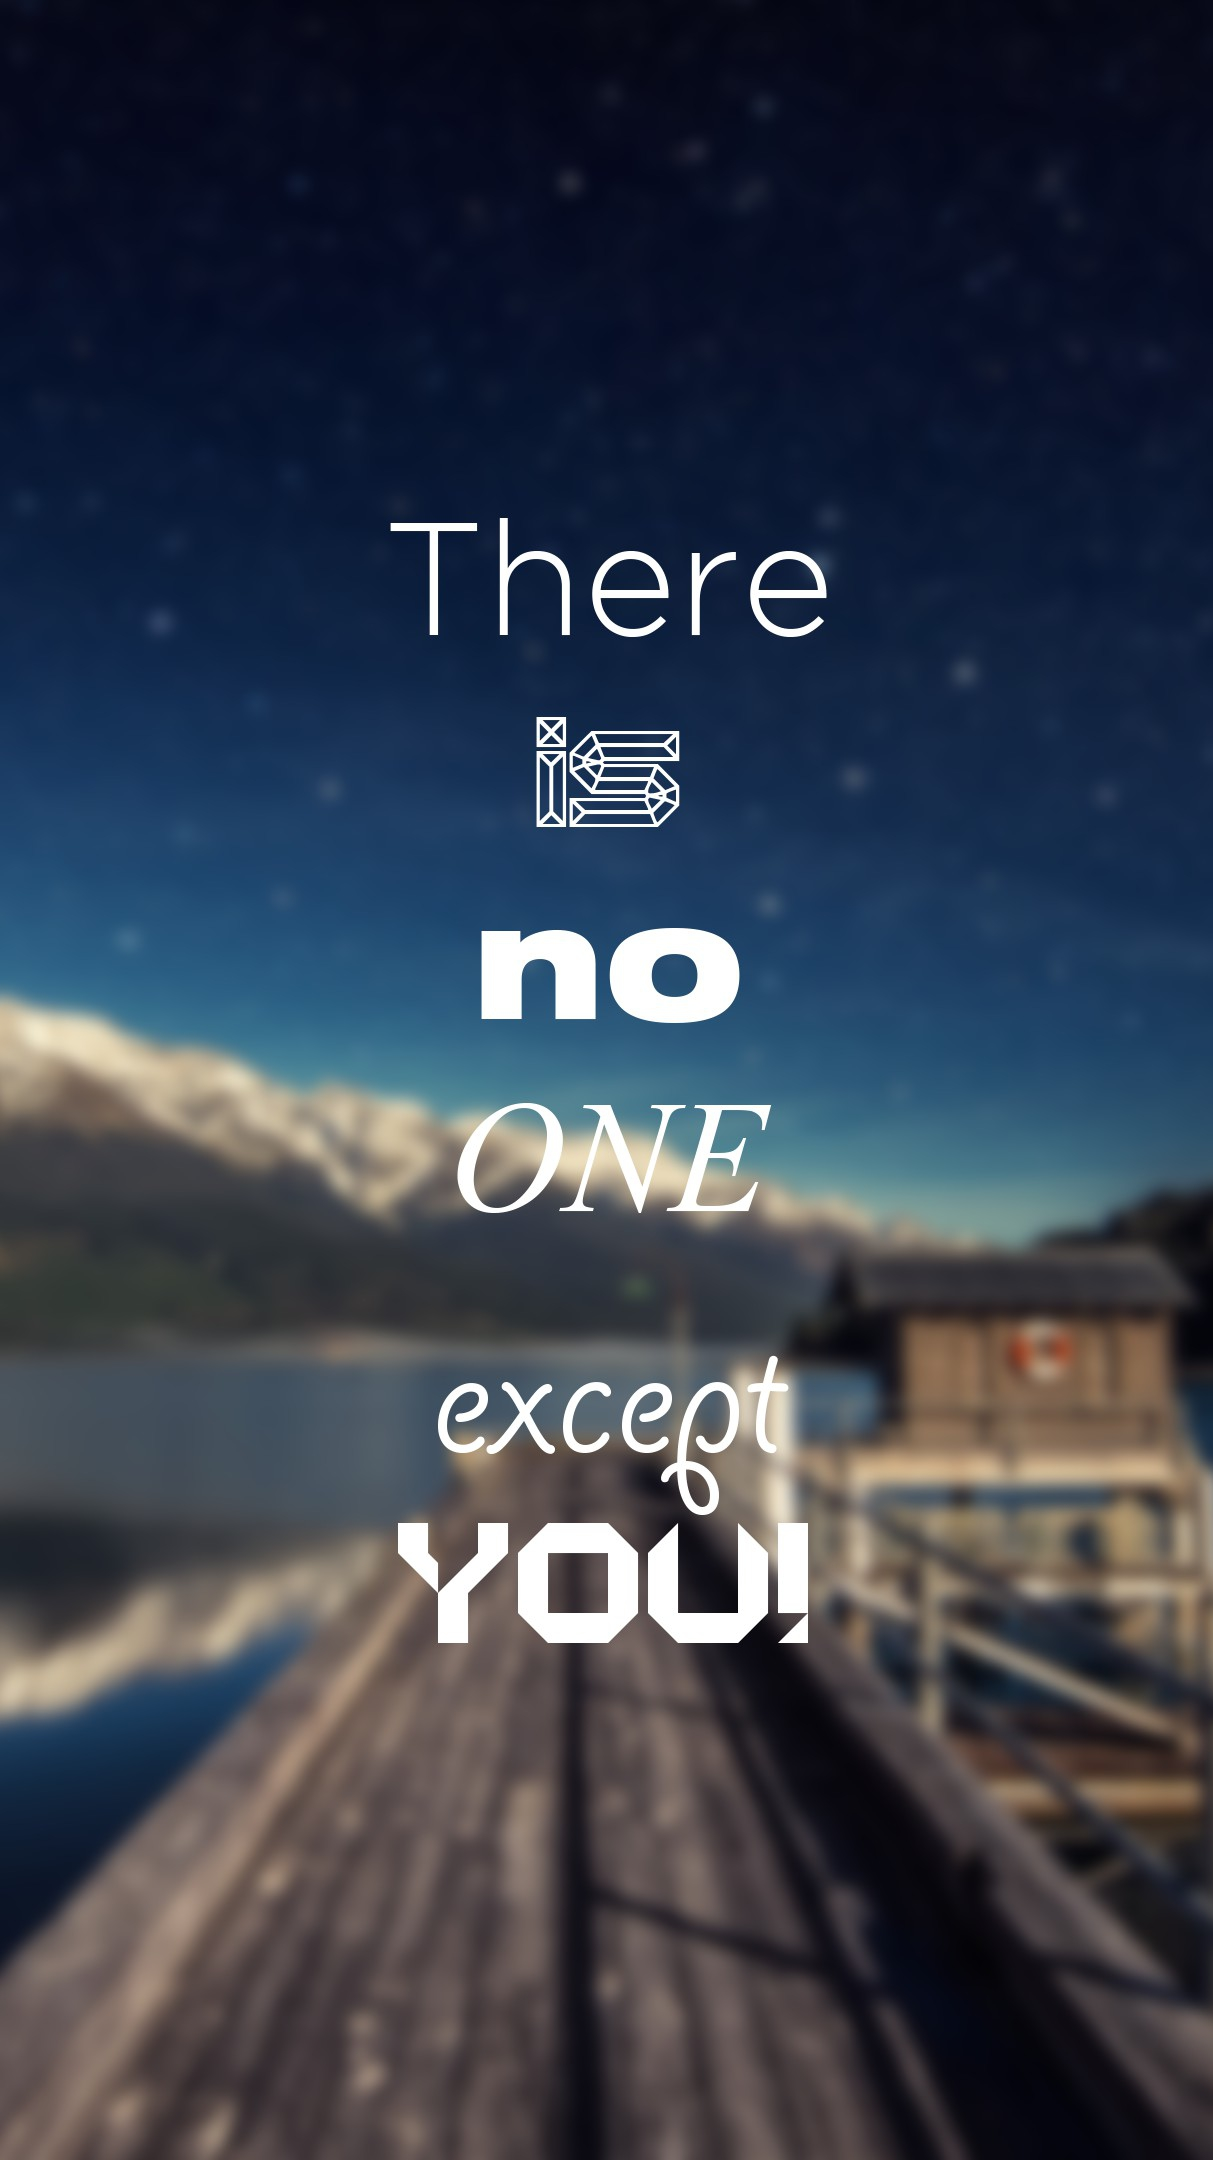 Cute Quote Wallpapers For Iphone 6 Self Esteem Quote Iphone Wallpaper Iphone Wallpapers